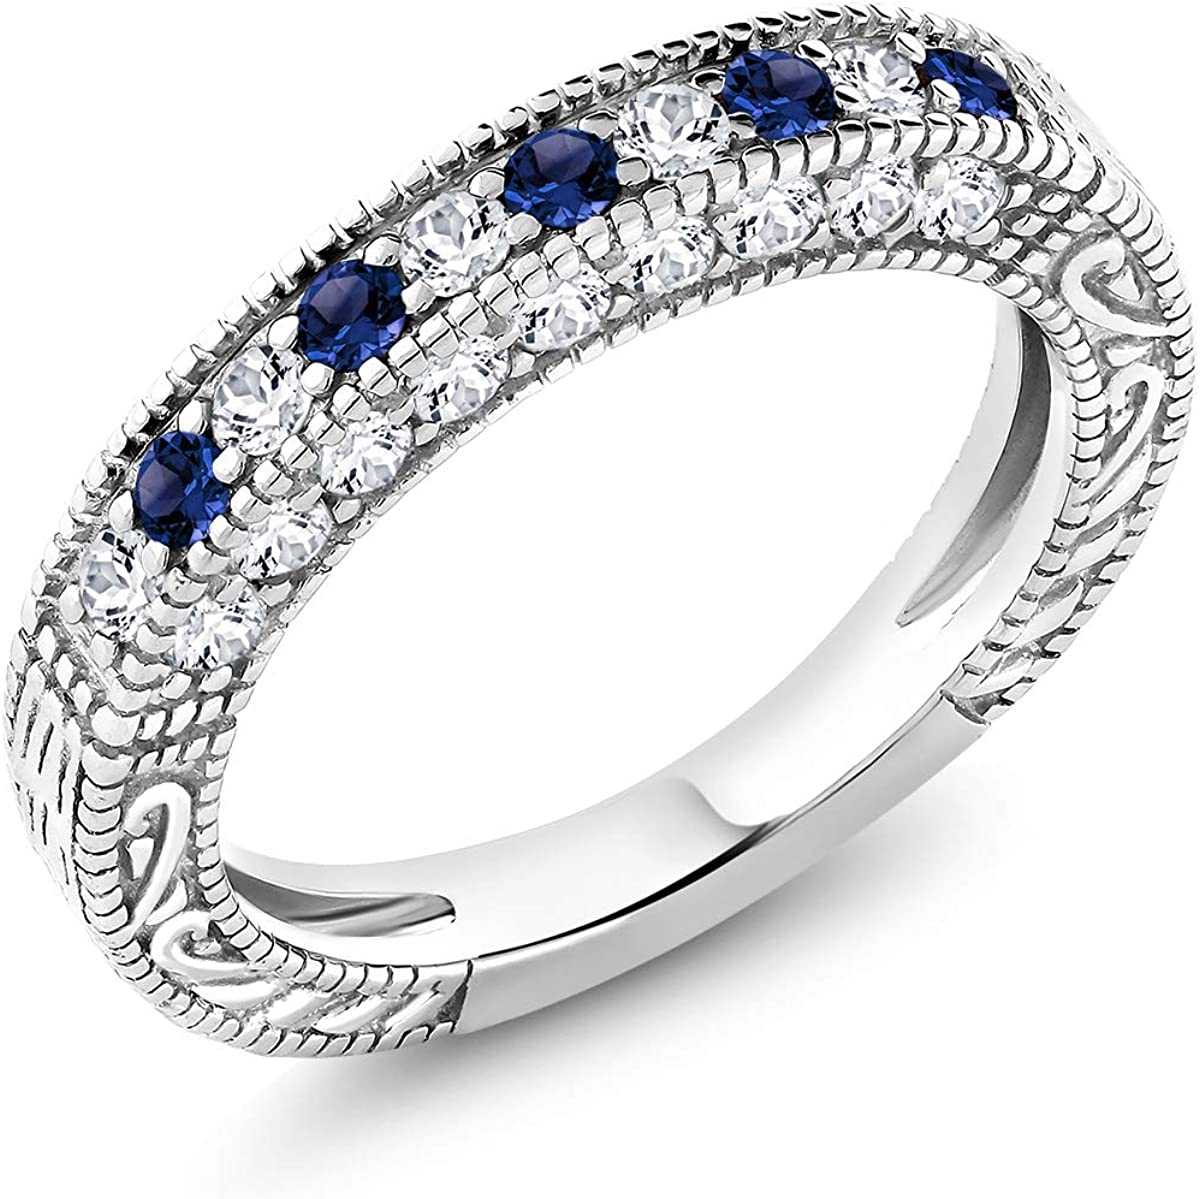 Gem Stone King 925 Sterling Silver Blue and White Created Sapphire Wedding Band Ring For Women (1.00 Cttw, Available 5,6,7,8,9)